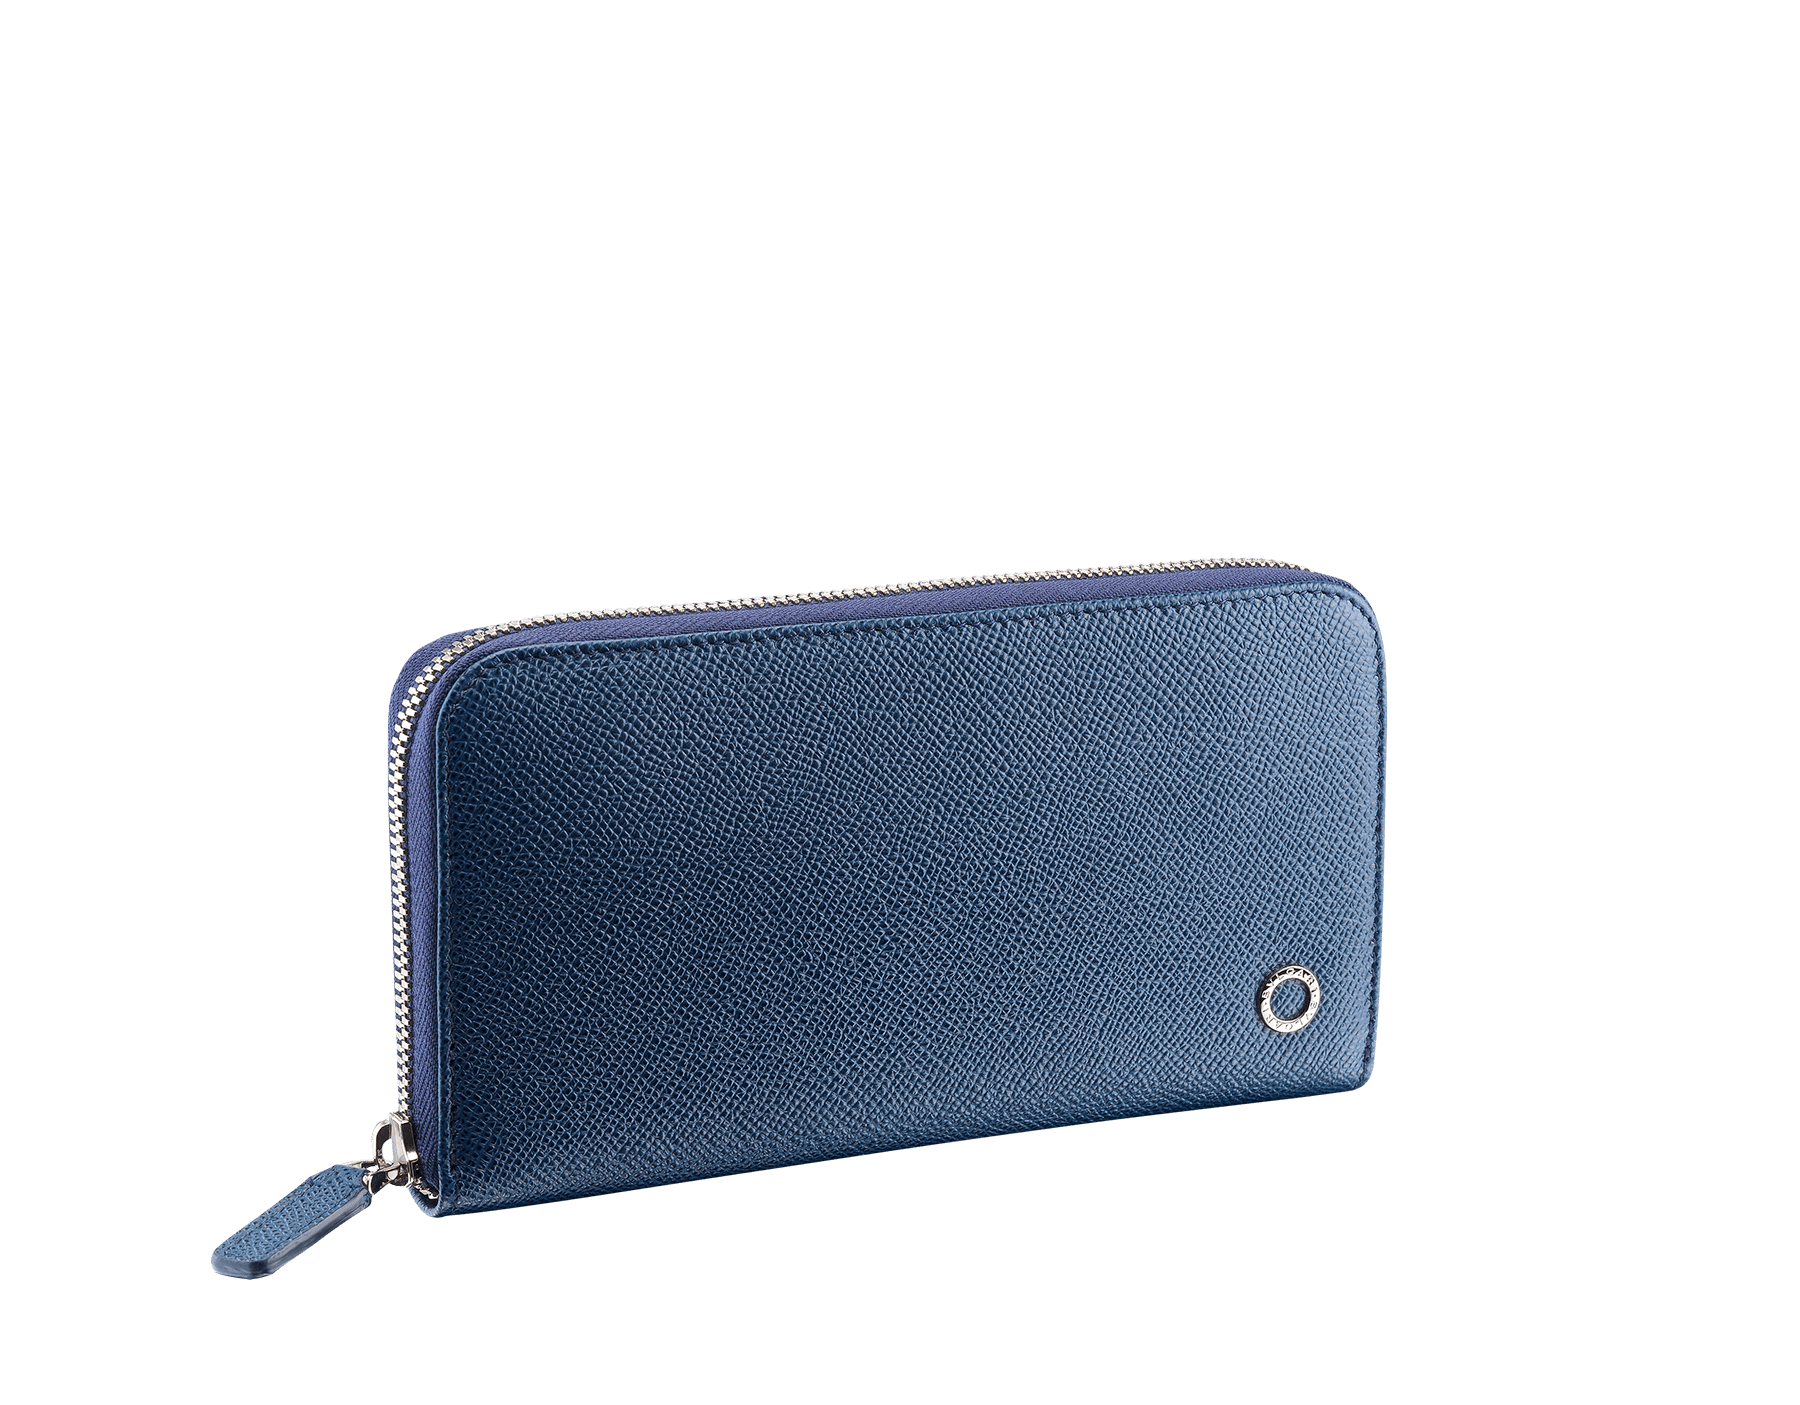 BVLGARI BVLGARI zipped wallet for men in charcoal diamond and emerald green grain calf leather and charcoal diamond nappa lining. Iconic logo decoration in palladium-plated brass. BBM-WLT-M-ZIP image 1